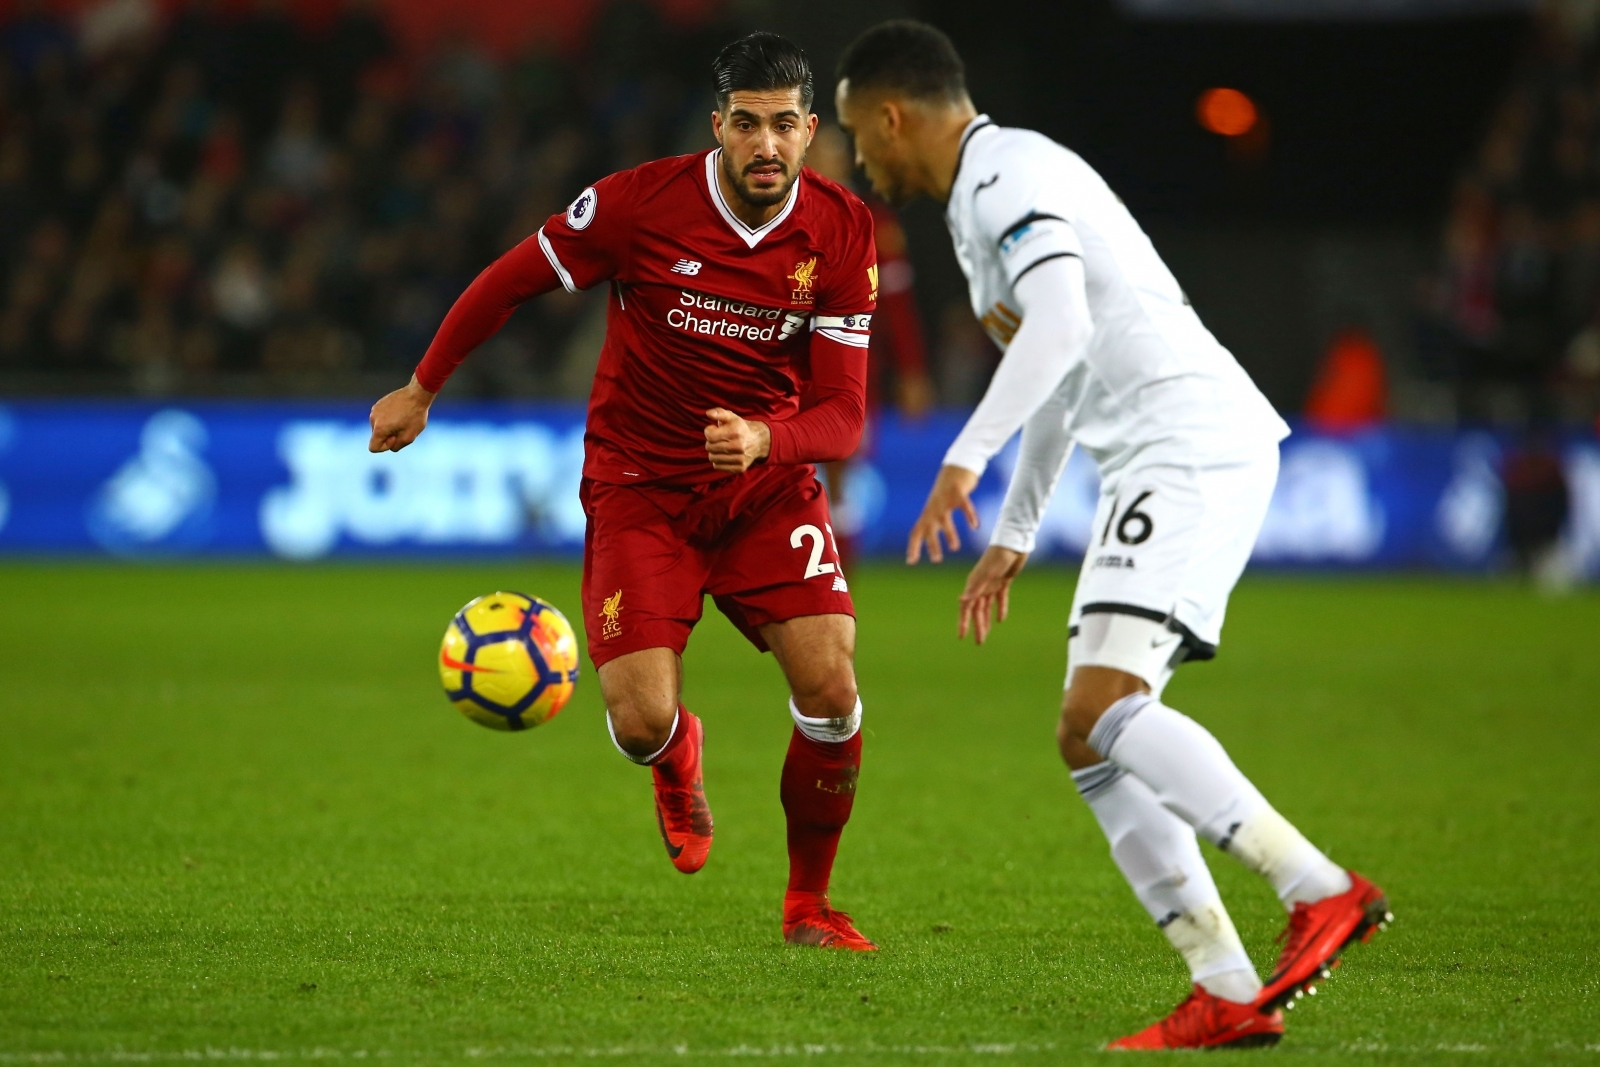 Juventus admit they have concerns over deal to sign Liverpool midfielder Emre Can